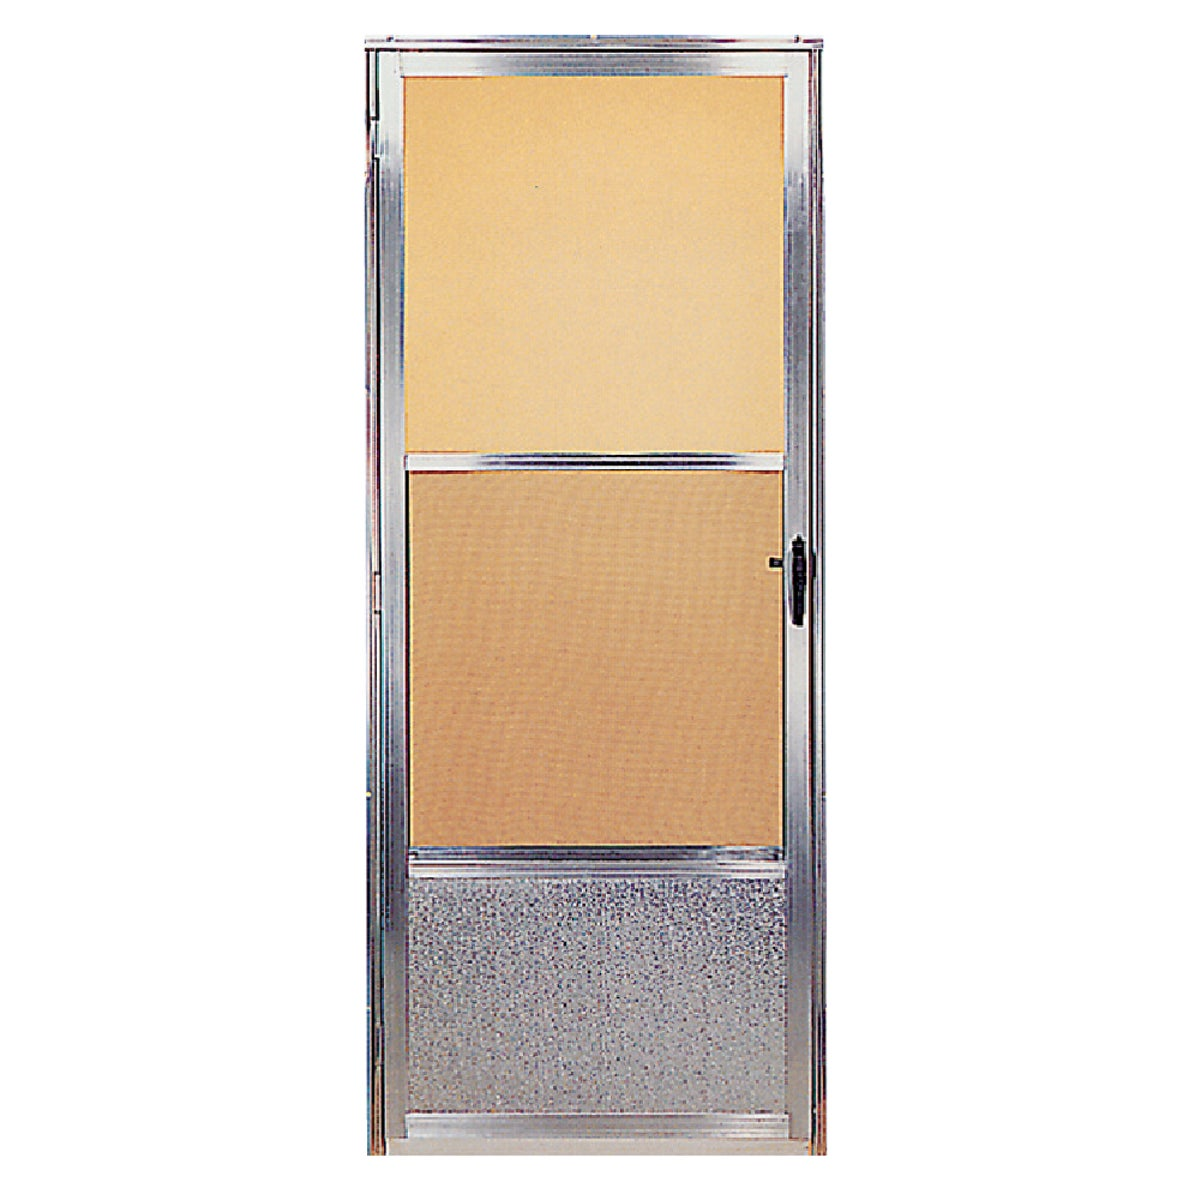 161 3068 LH MILL DOOR - F05748 by Croft Llc